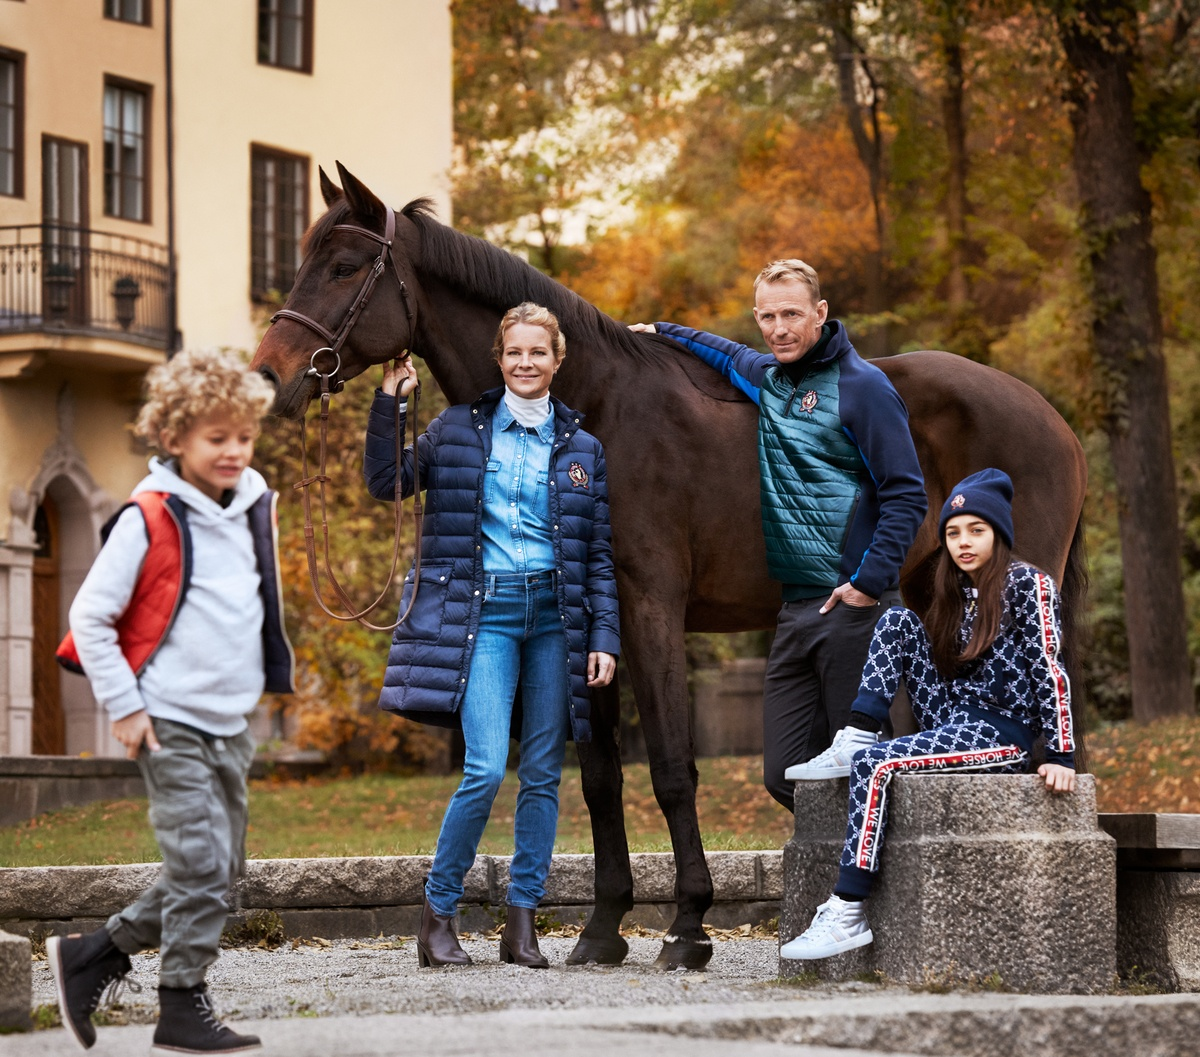 LUNDLUND : H&M We love horses